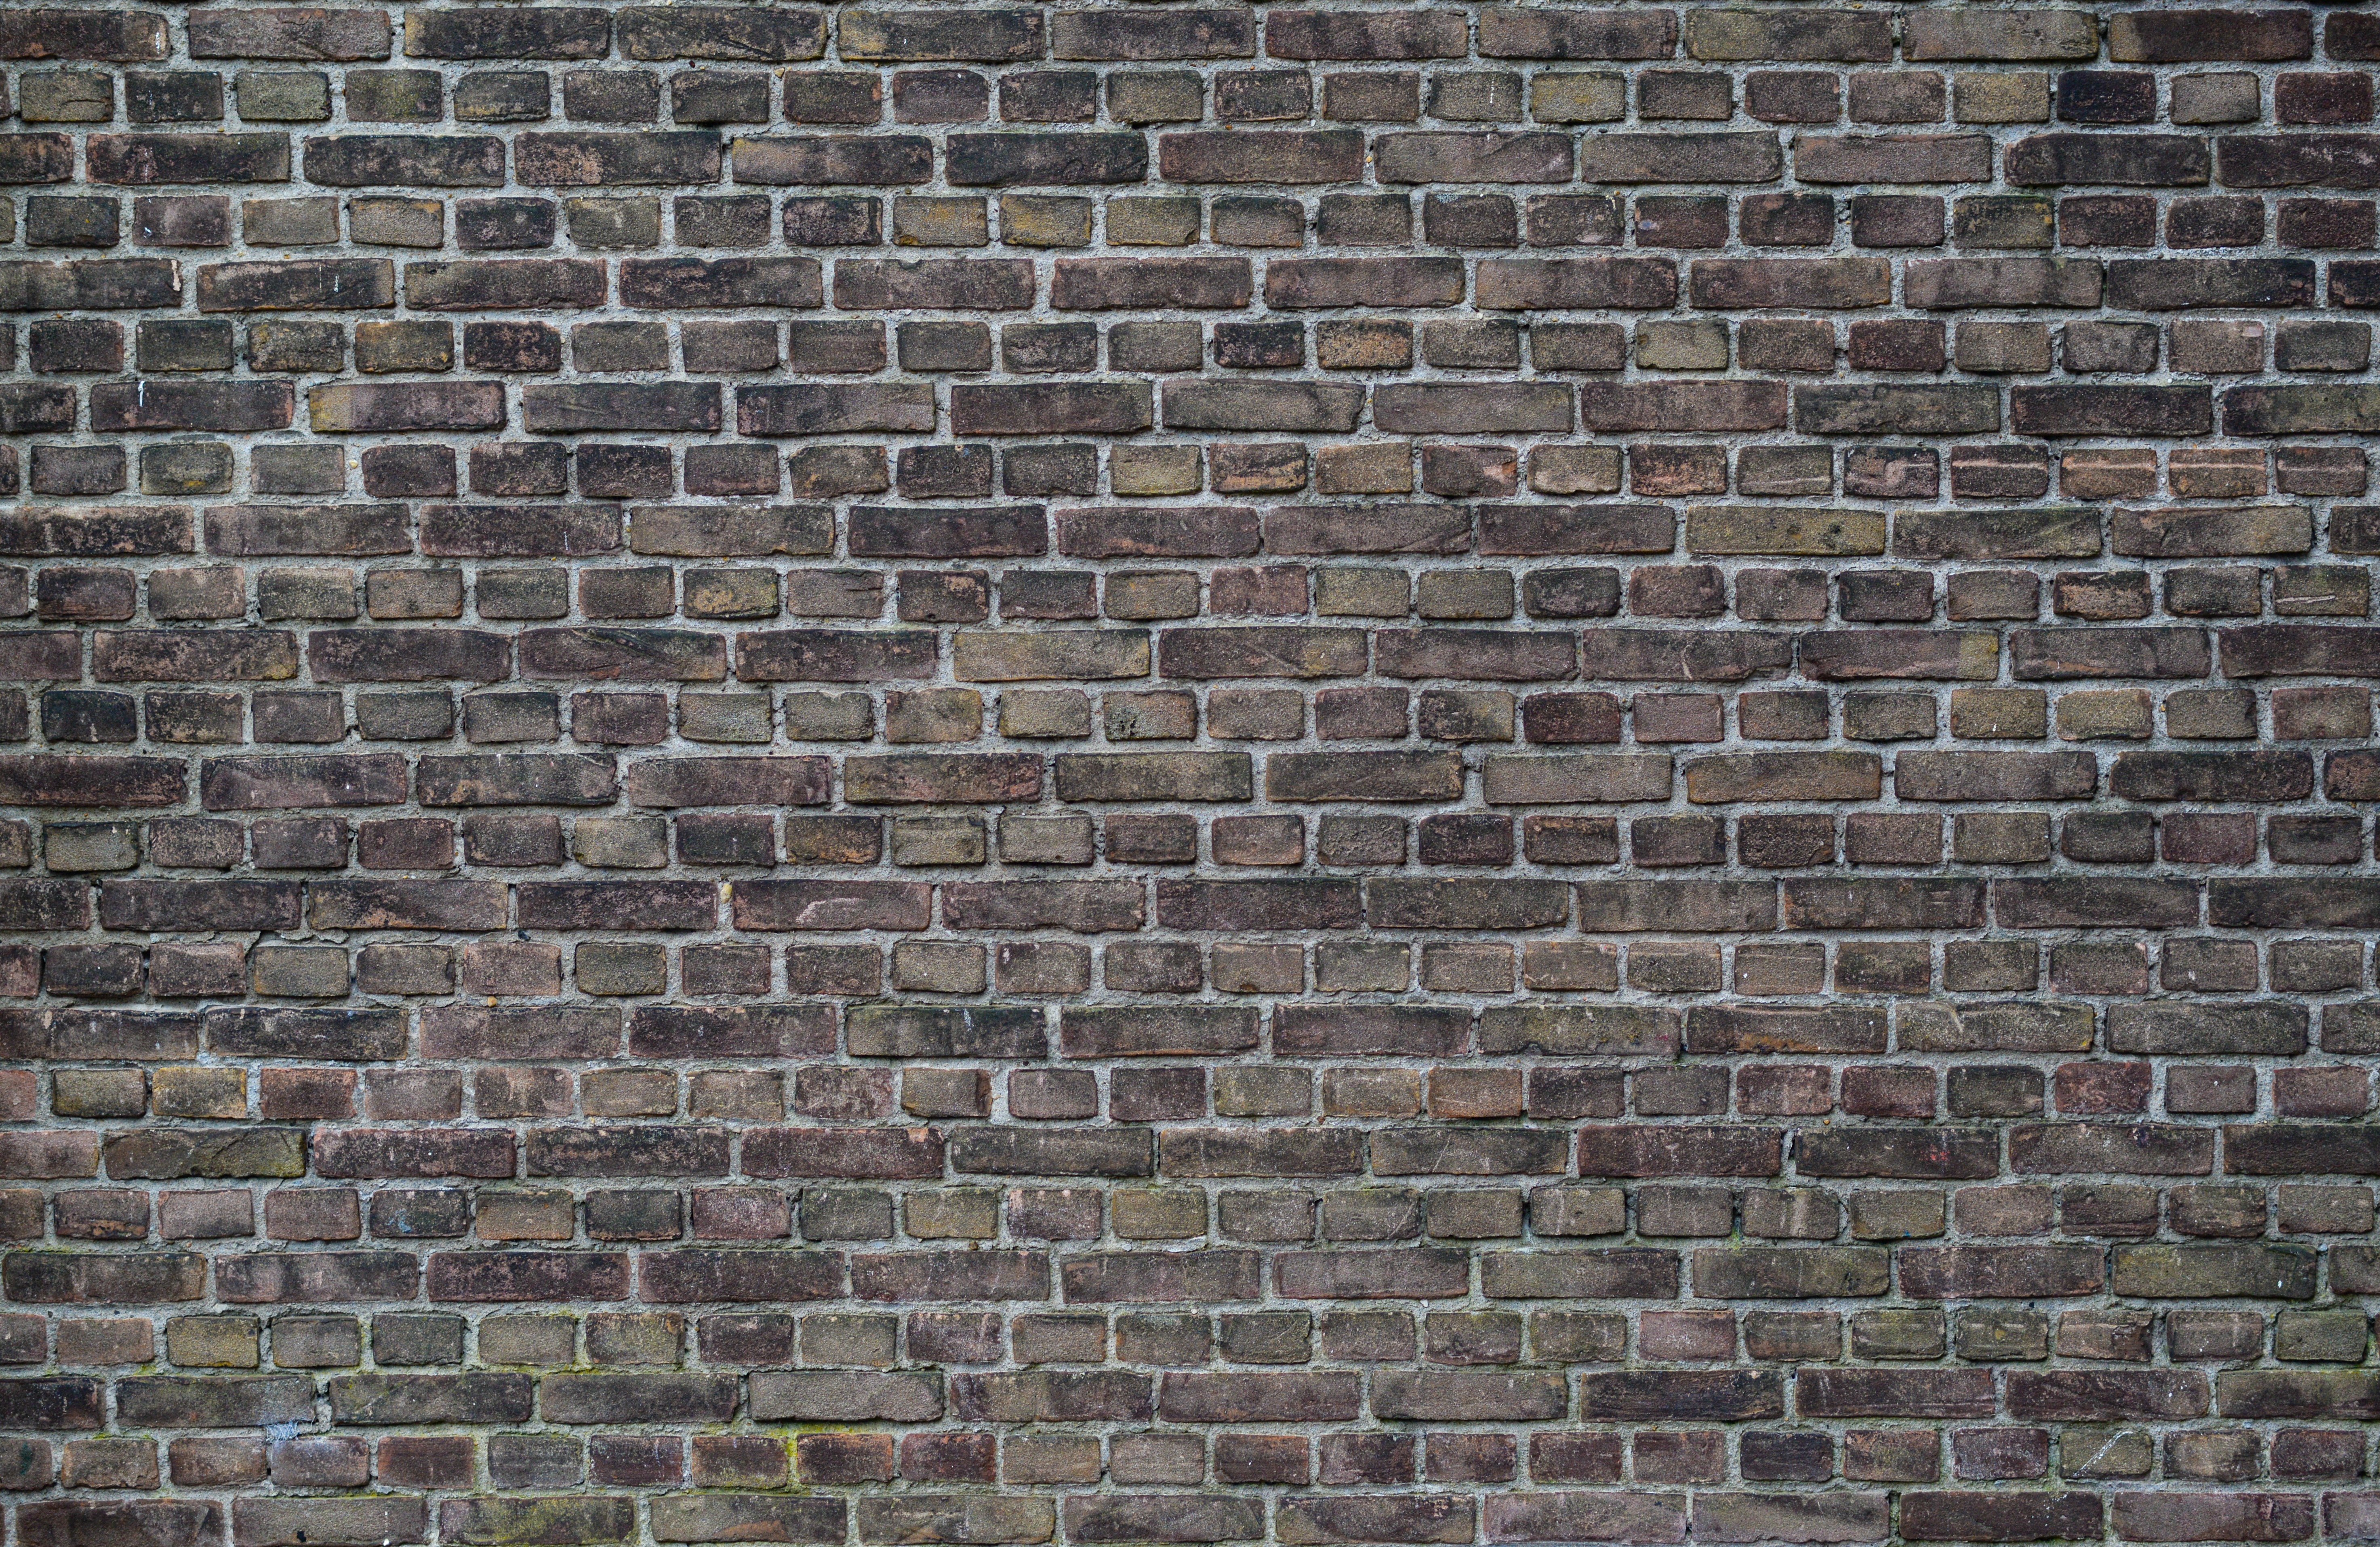 96525 download wallpaper Background, Texture, Textures, Wall, Brick screensavers and pictures for free